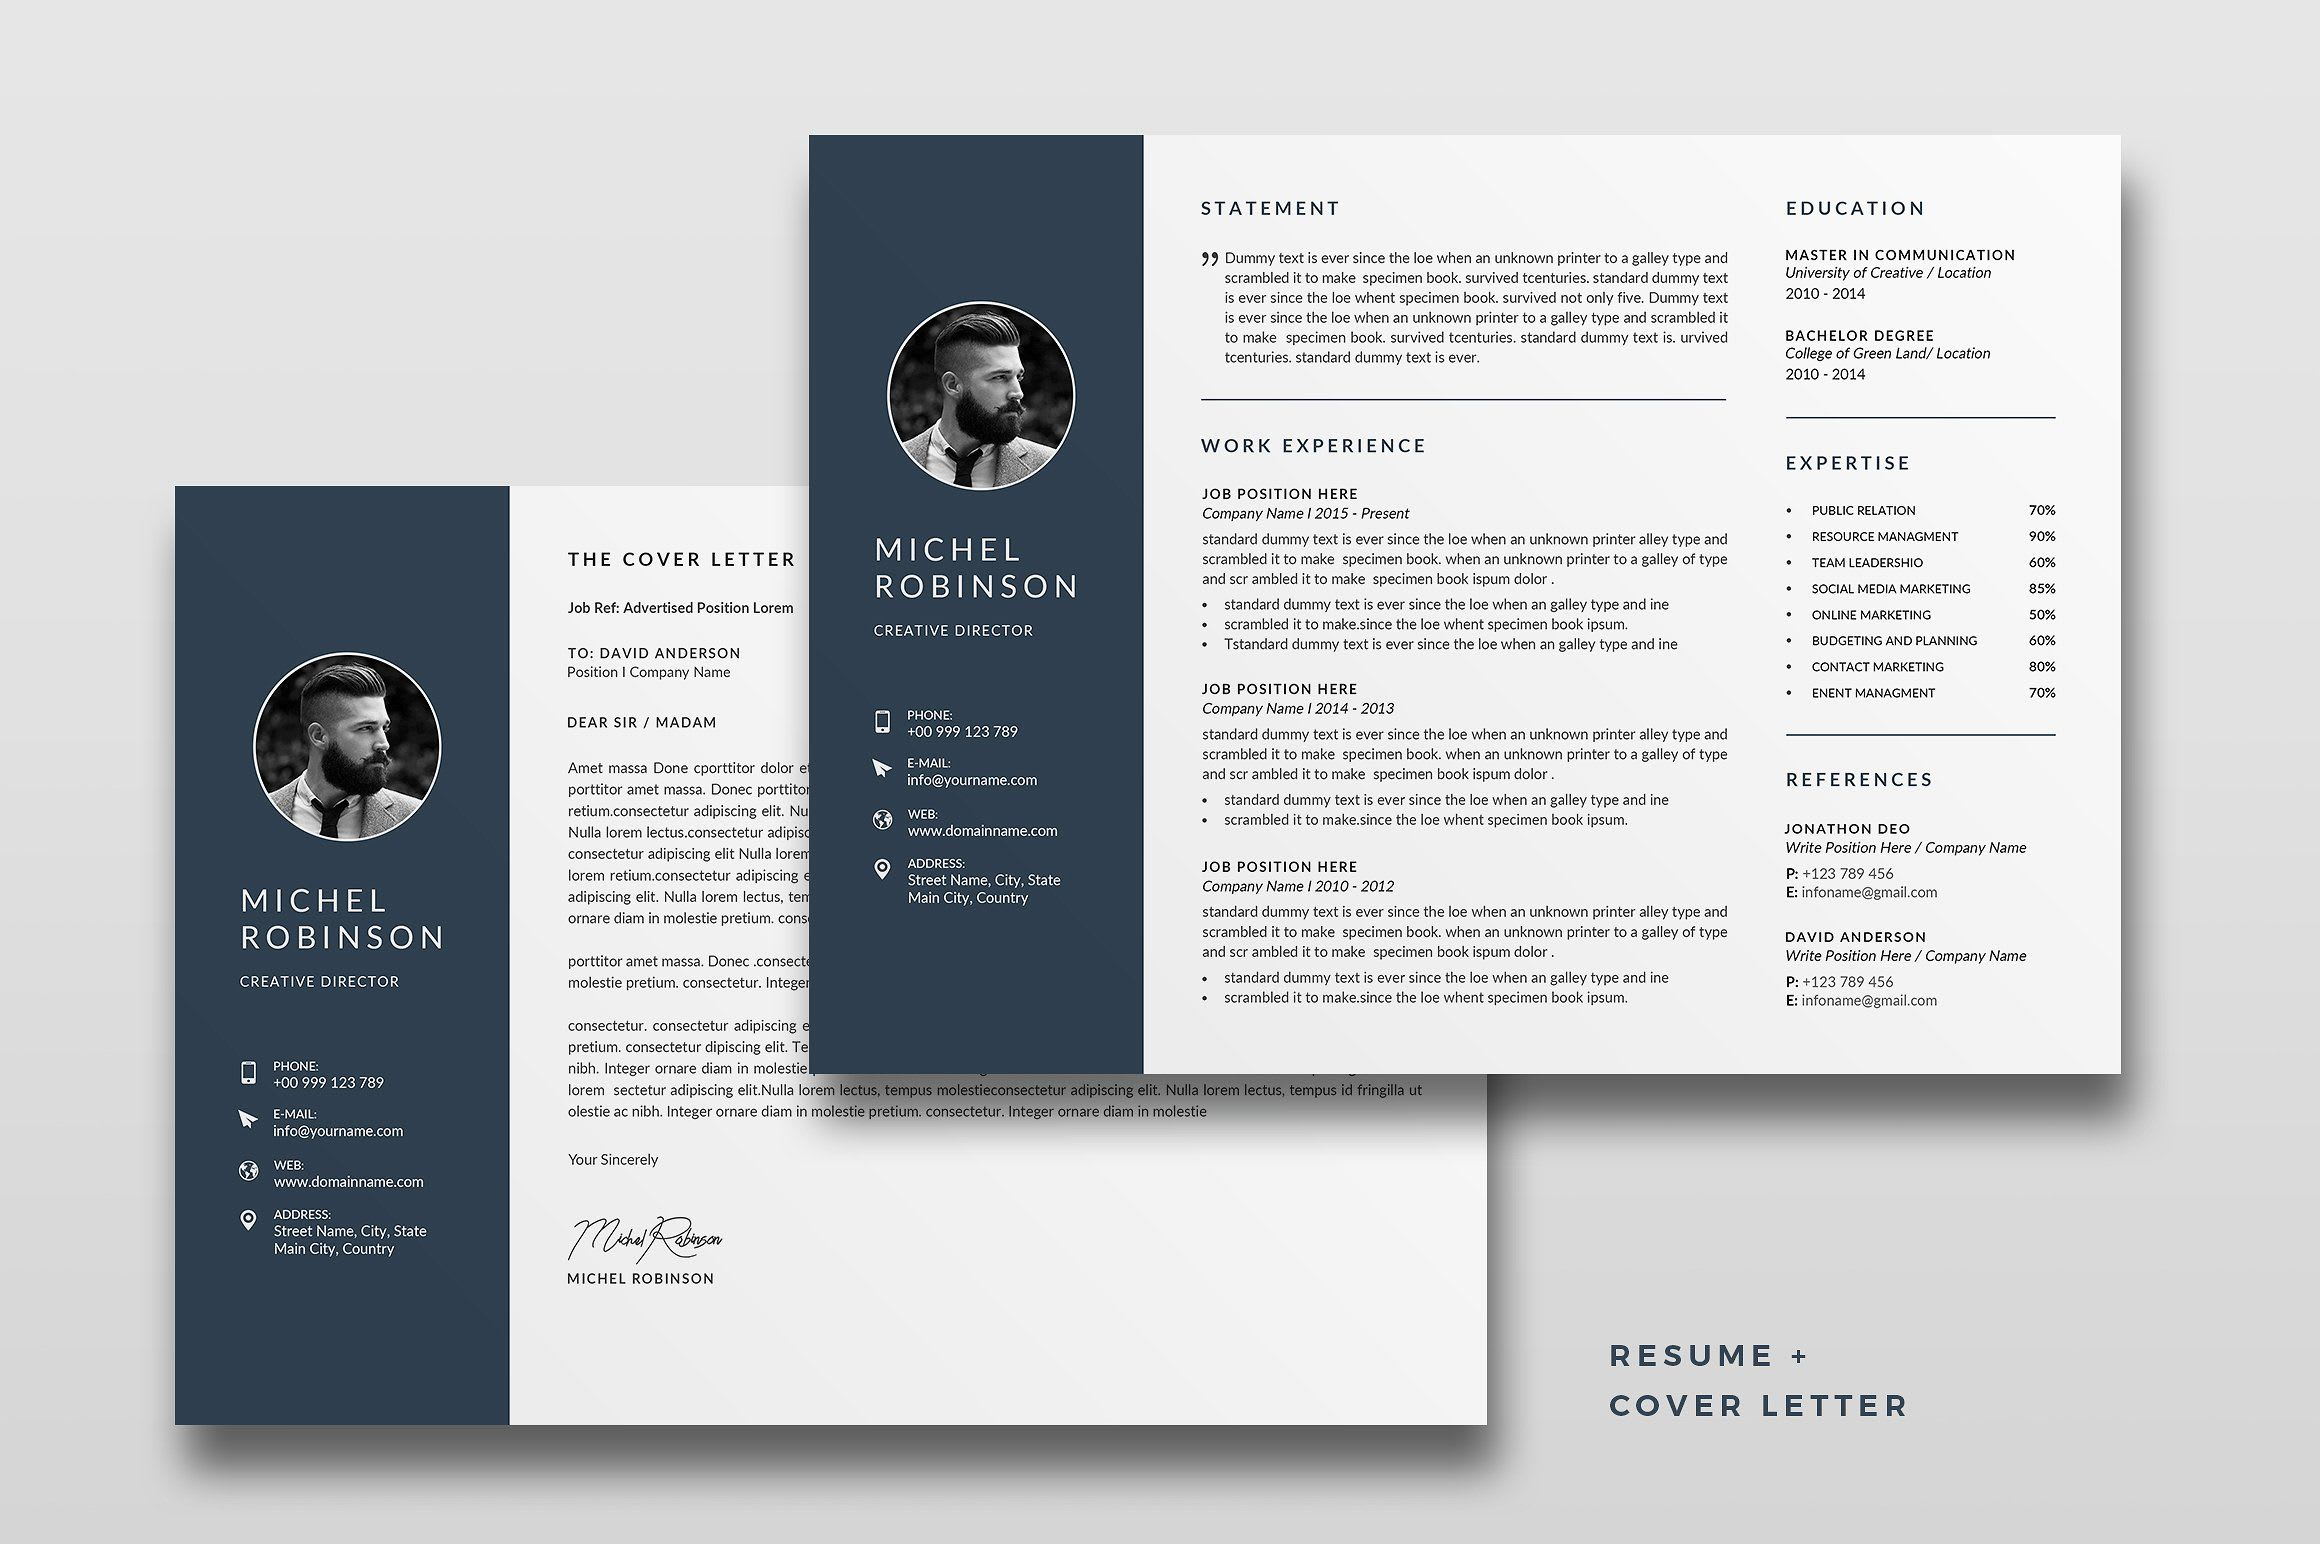 Cover Letter For Unknown Position from fiverr-res.cloudinary.com